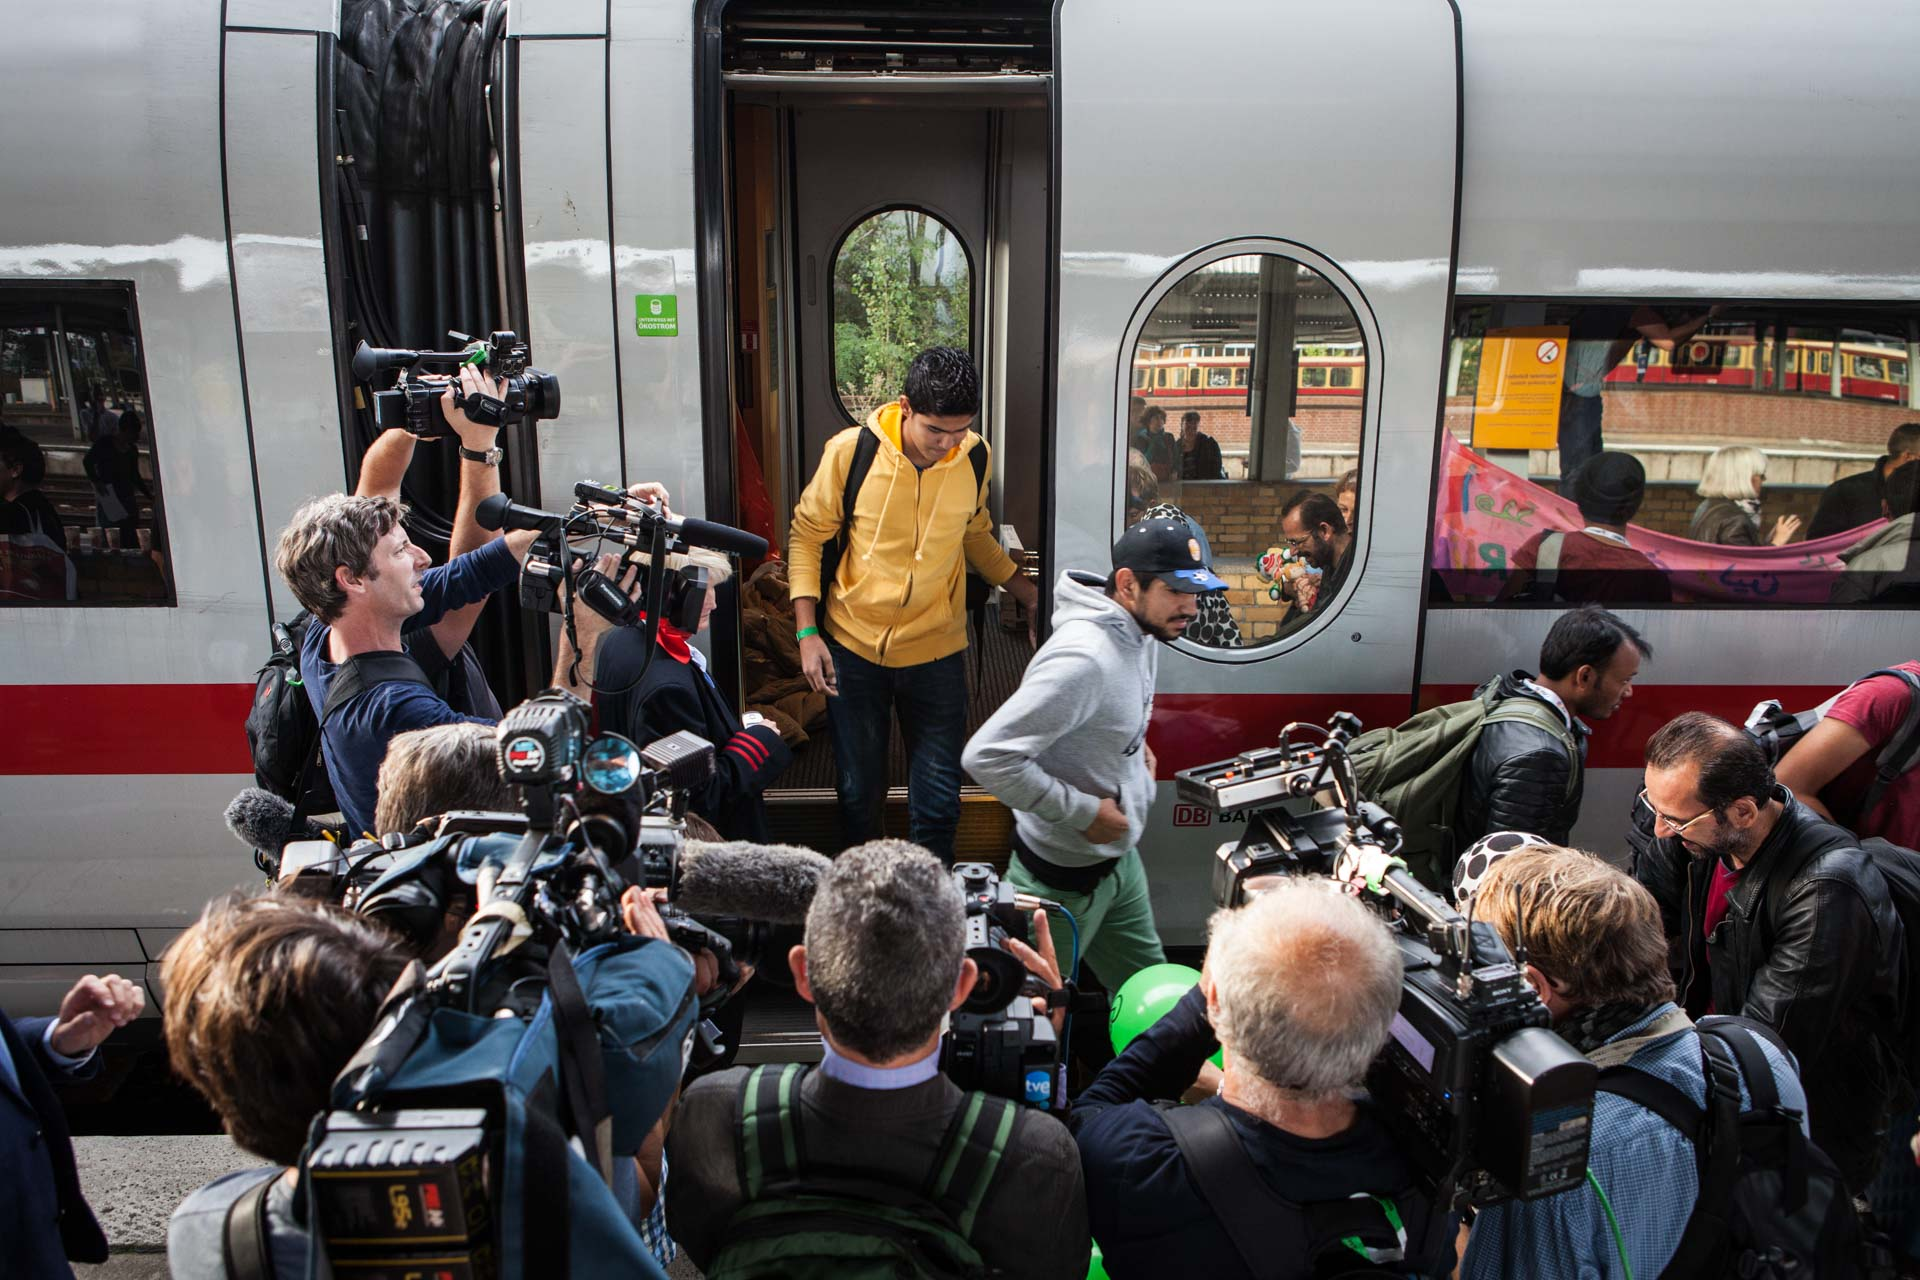 A special train from Munich brings 700 refugees to Schöneberg train station in Berlin, where they are received with food, water, medical care and a lot of press. For most of the refugees arriving in Germany, this is the end of their journey.